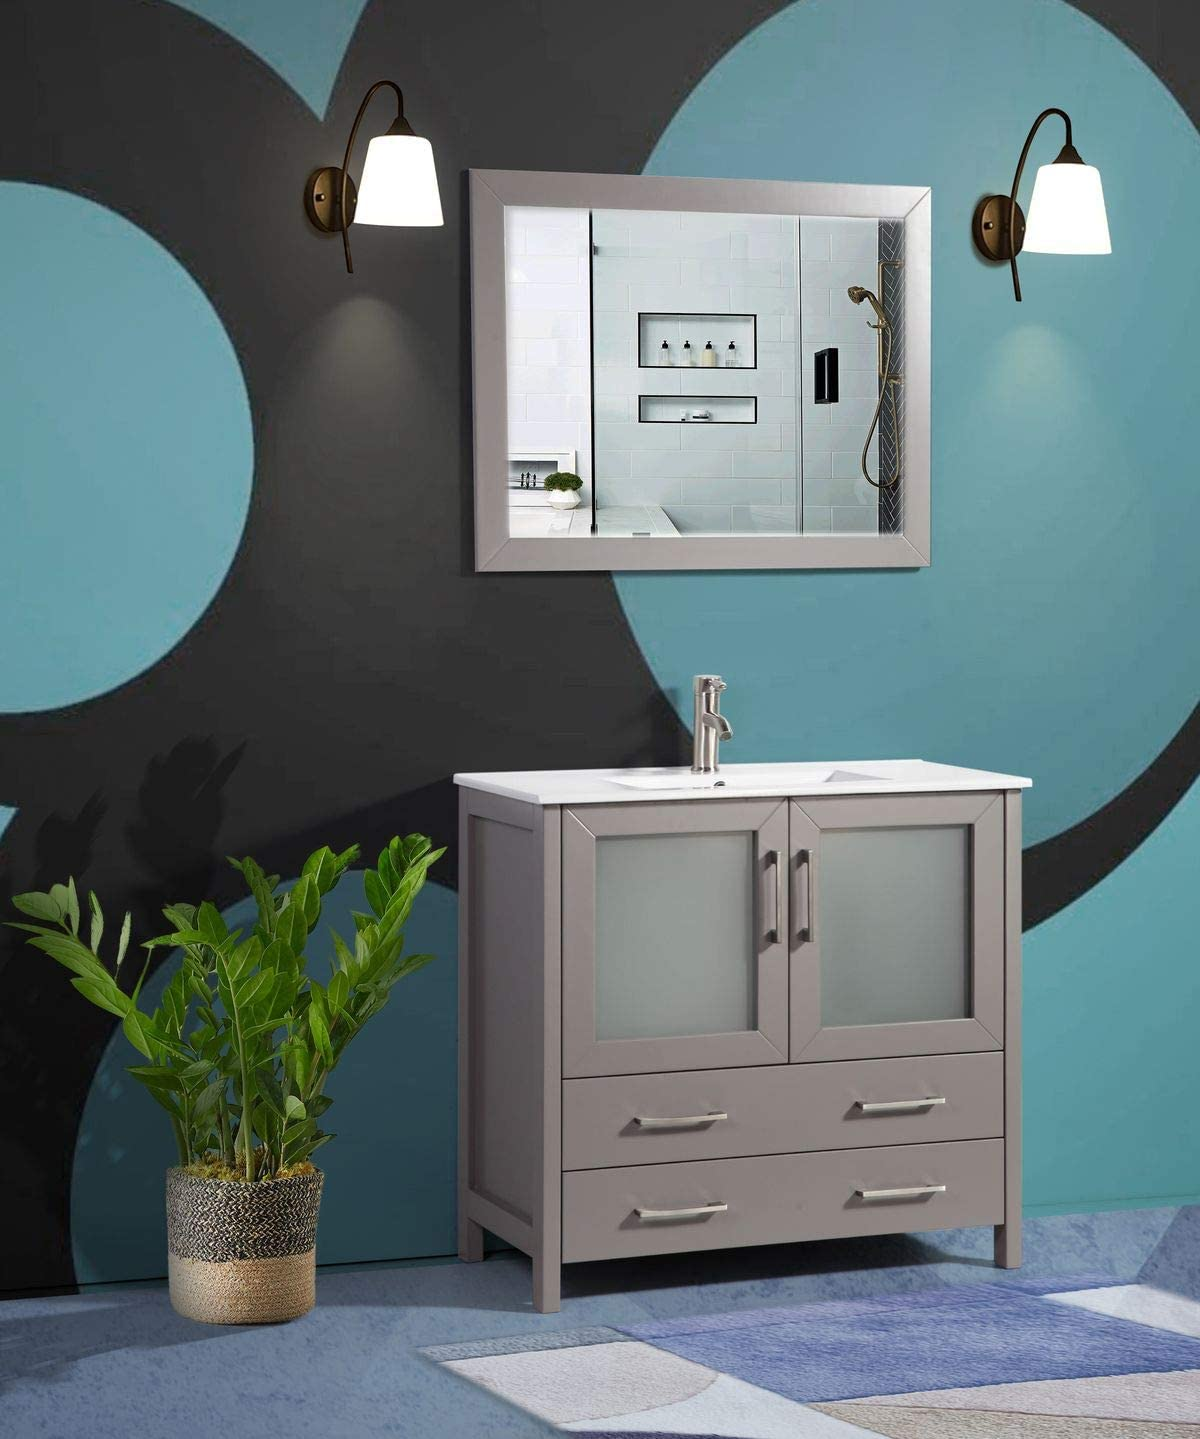 Vanity Art 36 Inch Single Sink Modern Bathroom Vanity Compact Set 1 Shelf 2 Drawers Ceramic Top Bathroom Cabinet With Free Mirror Va3036 G Kitchen Dining